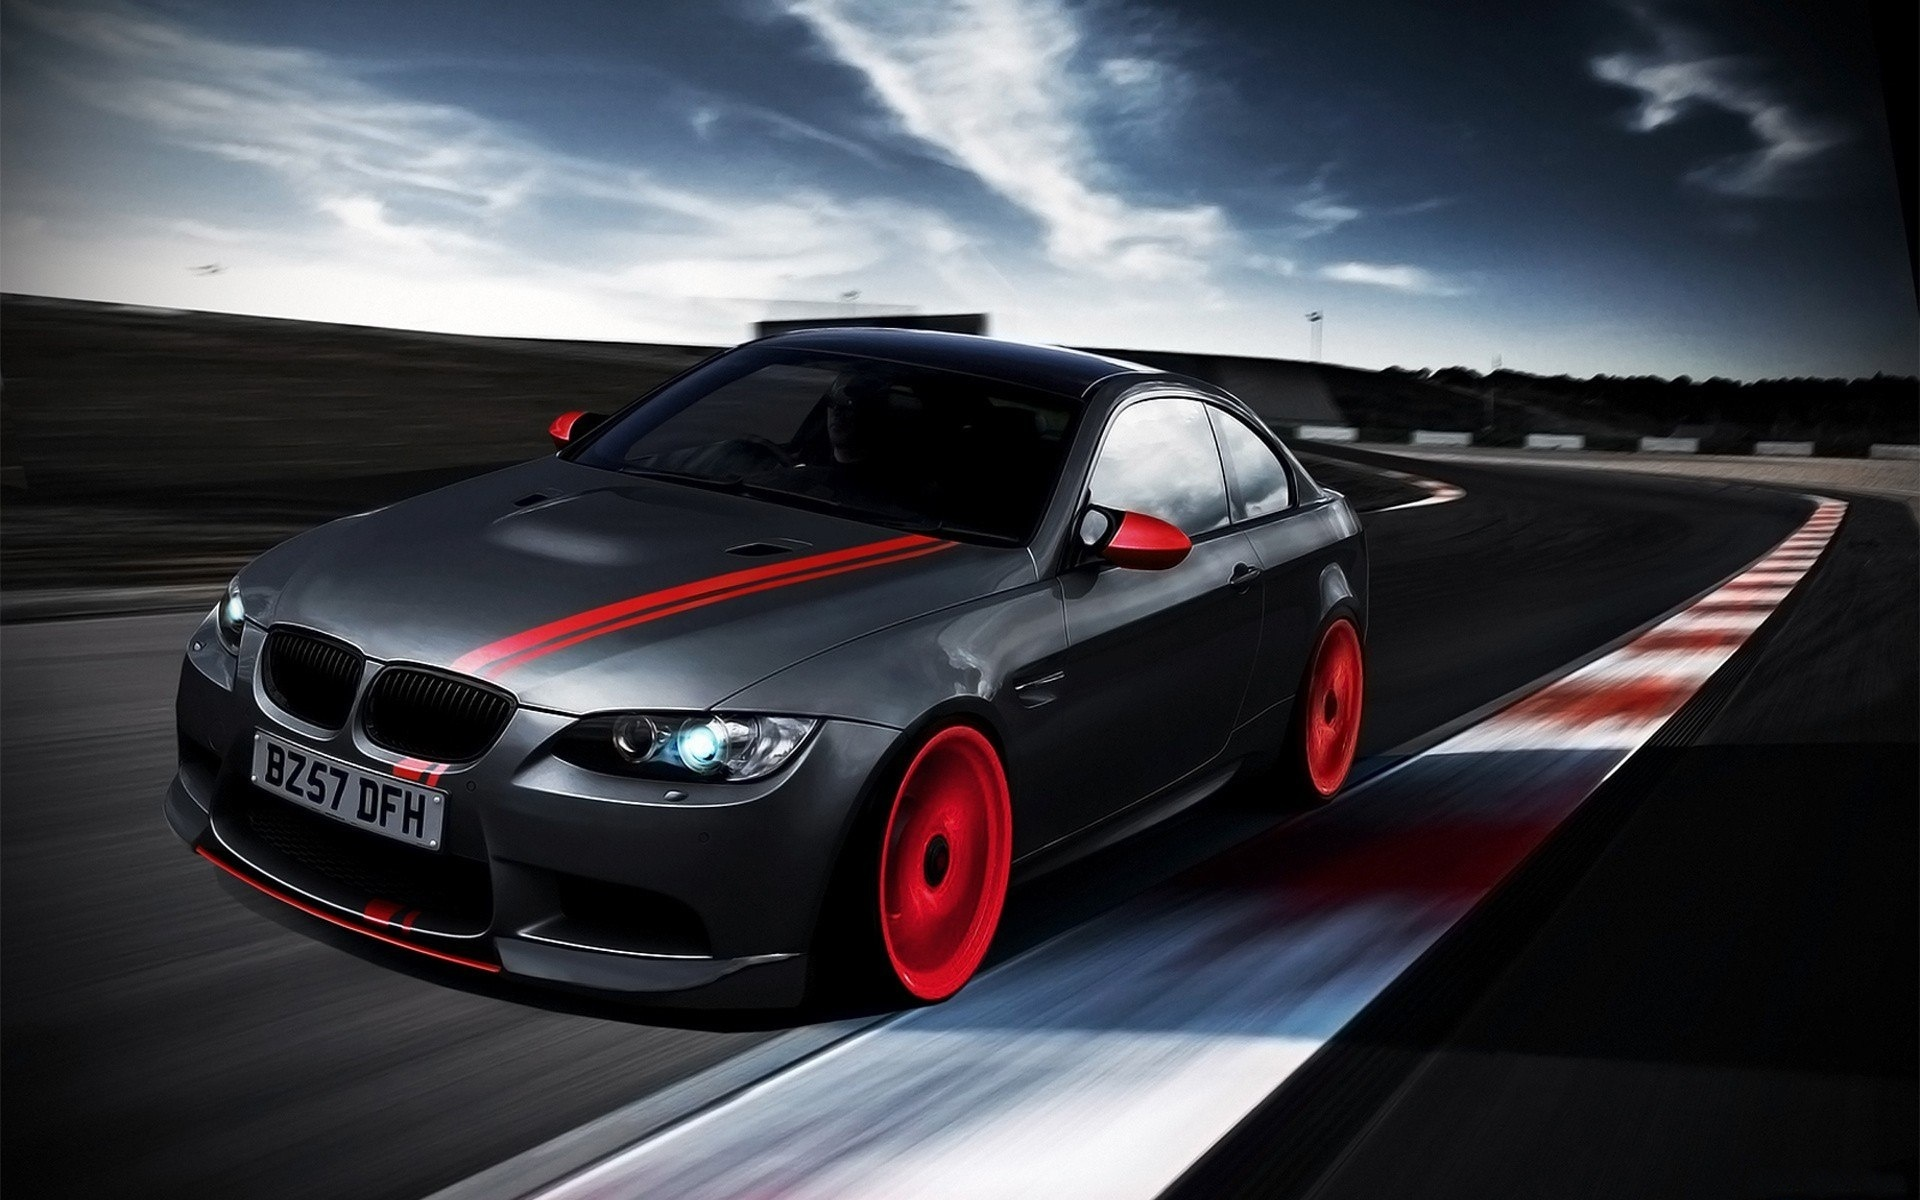 Cool Bmw Wallpaper 28628 1920x1200 Px Hdwallsource Com